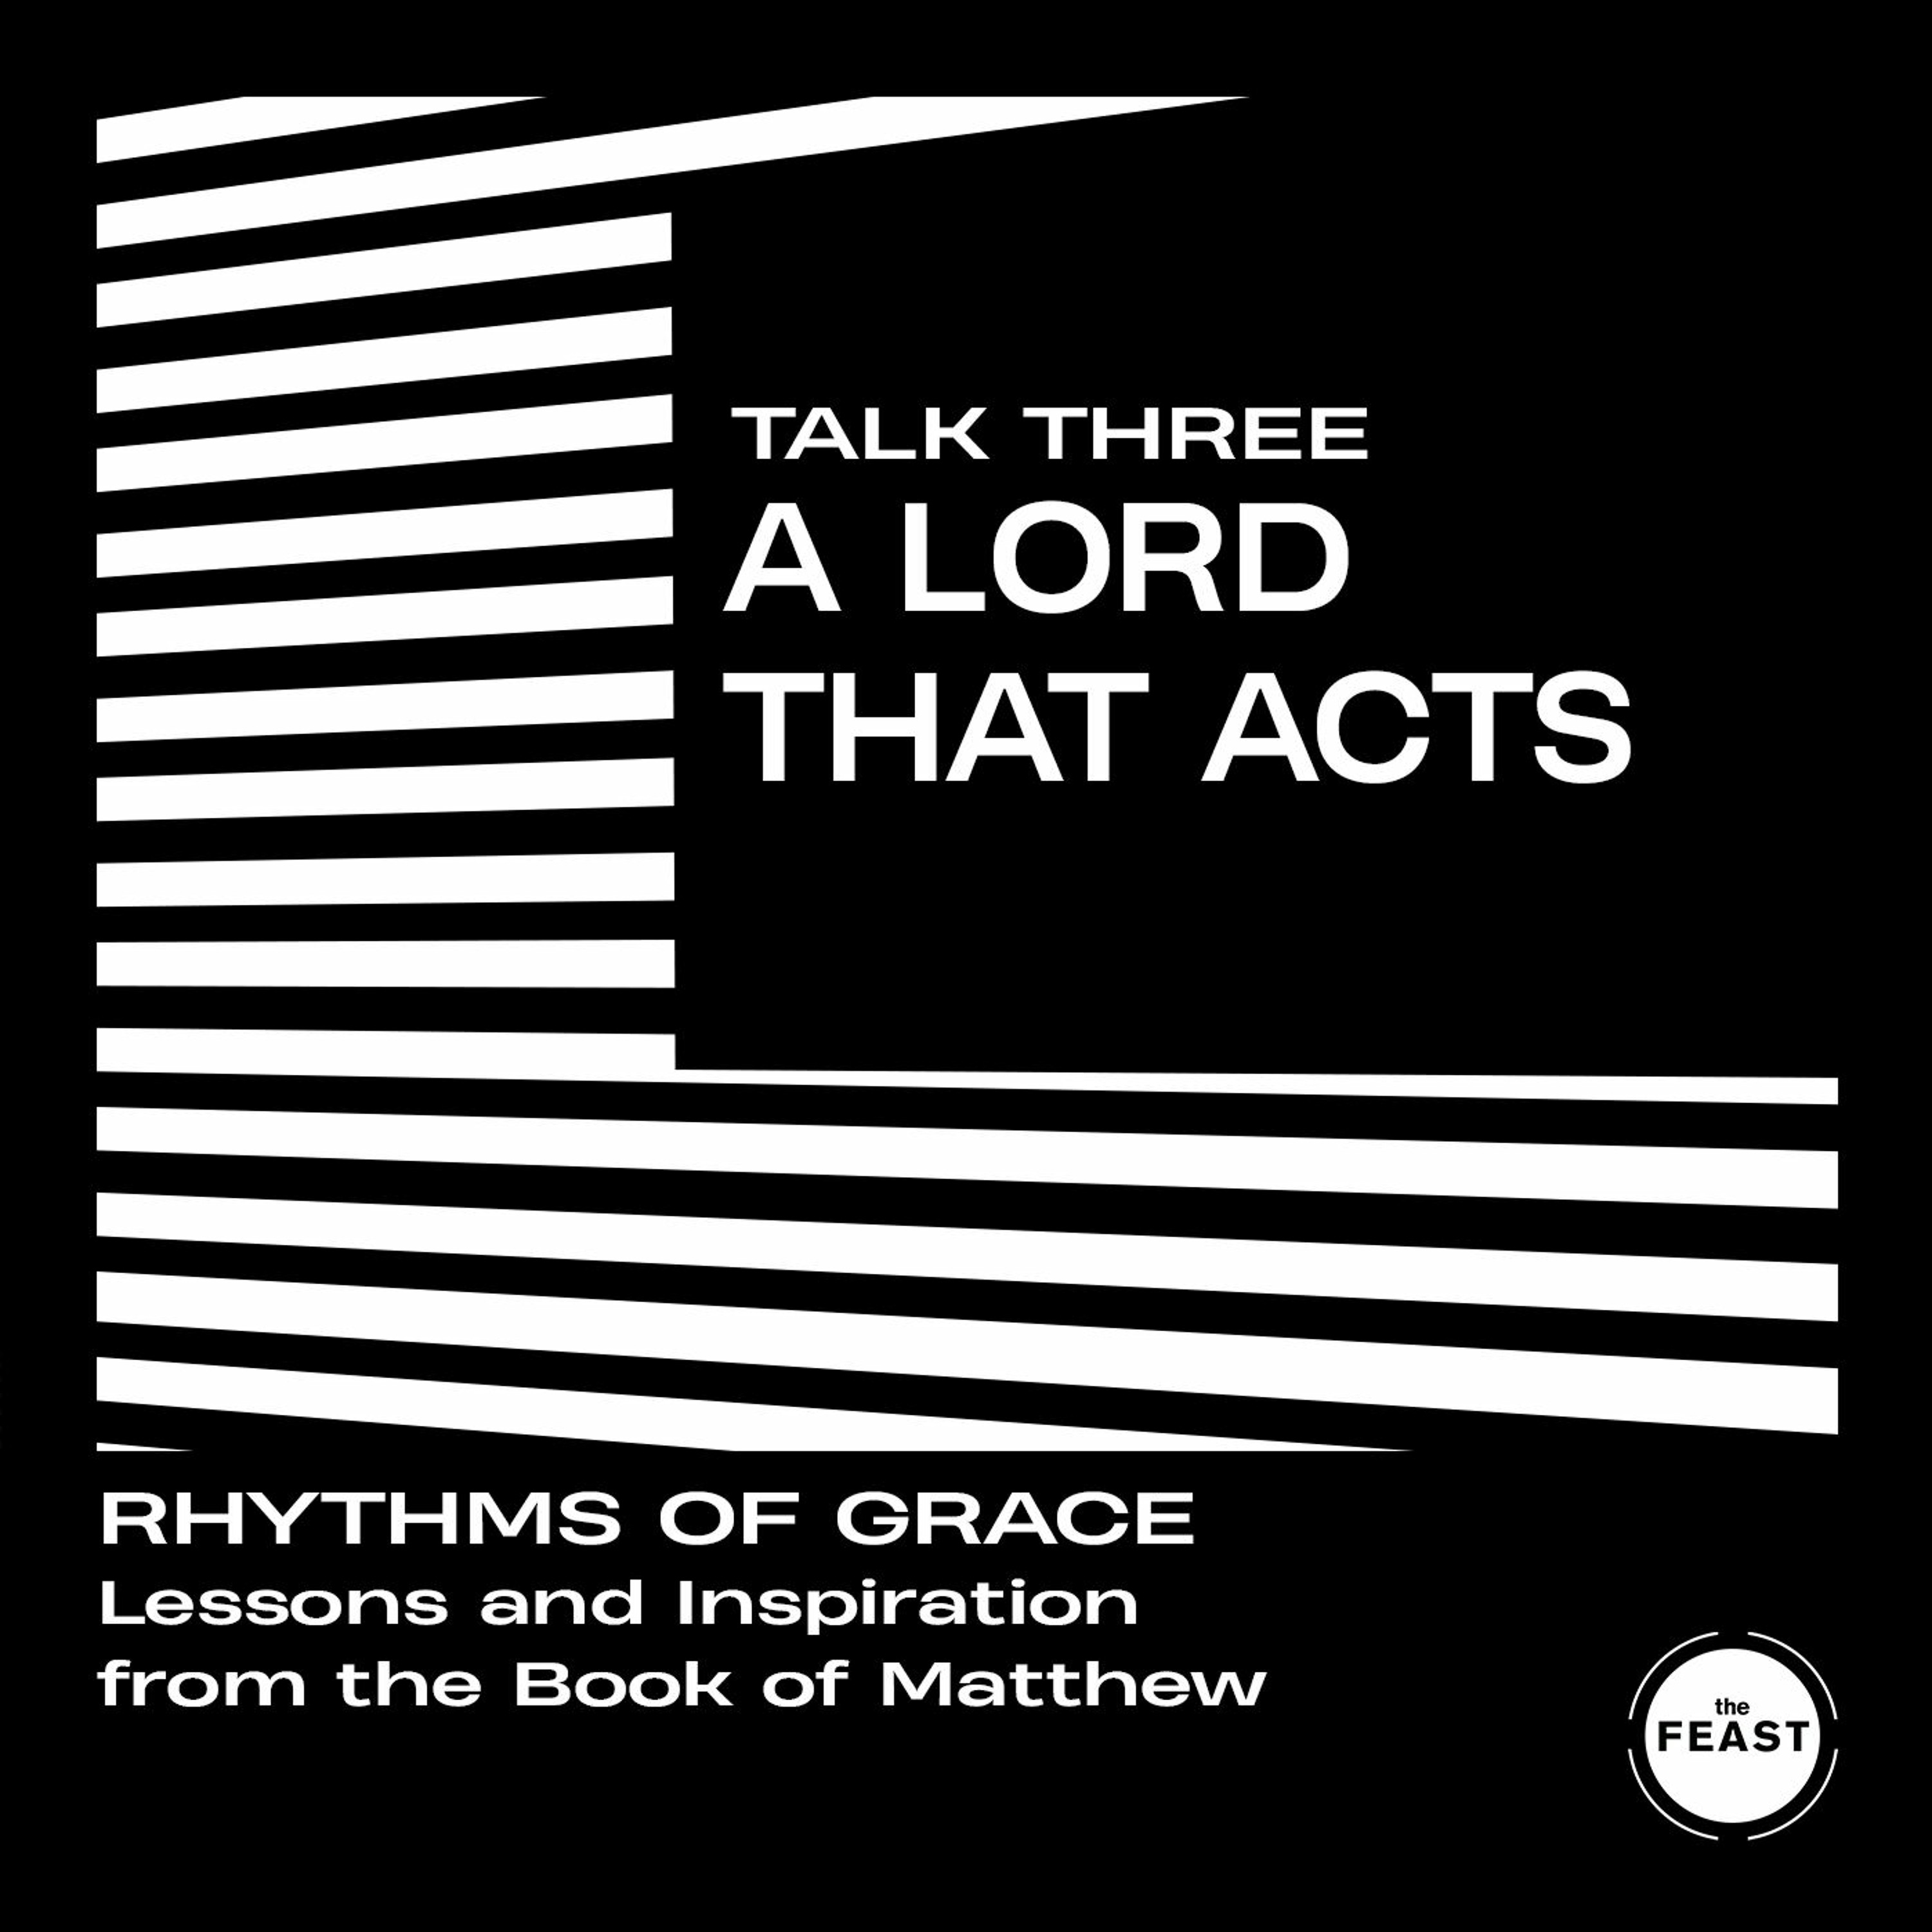 Rhythms of Grace Talk 3: A Lord That Acts